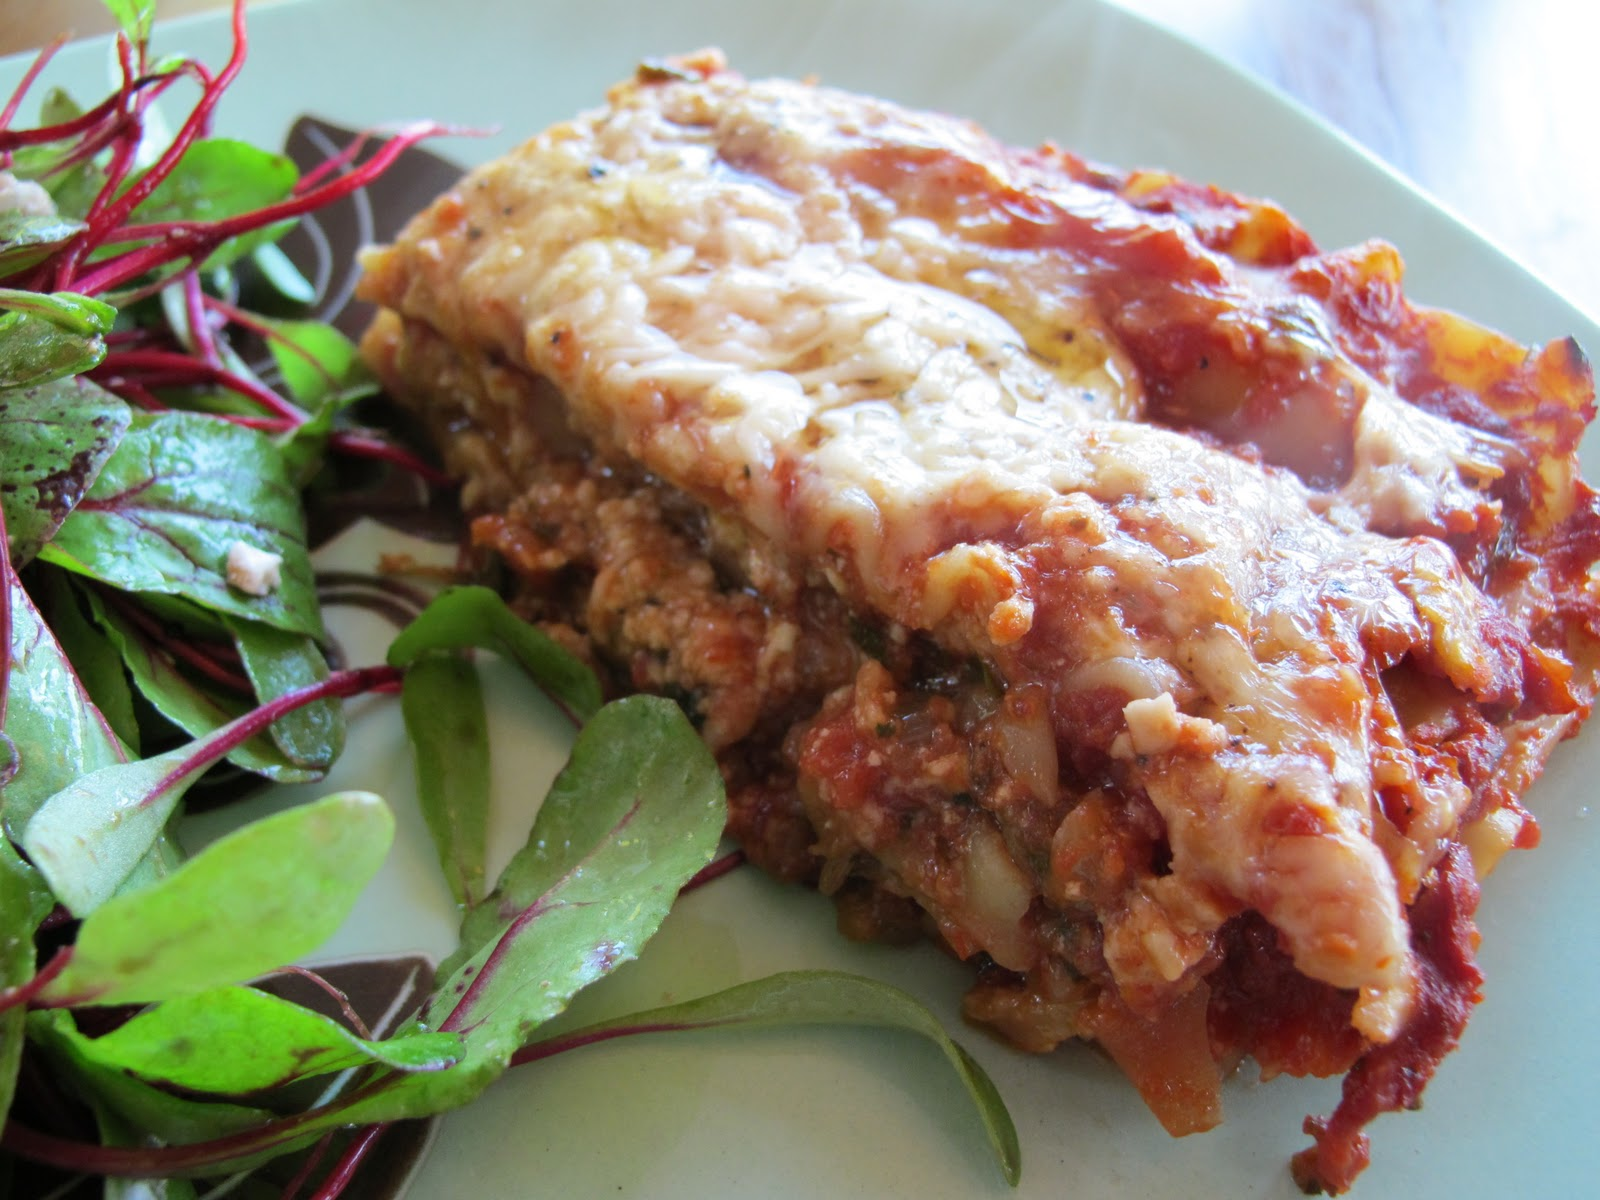 Obsessed with Dinner: Simple (but so good) Chard and Sausage Lasagna